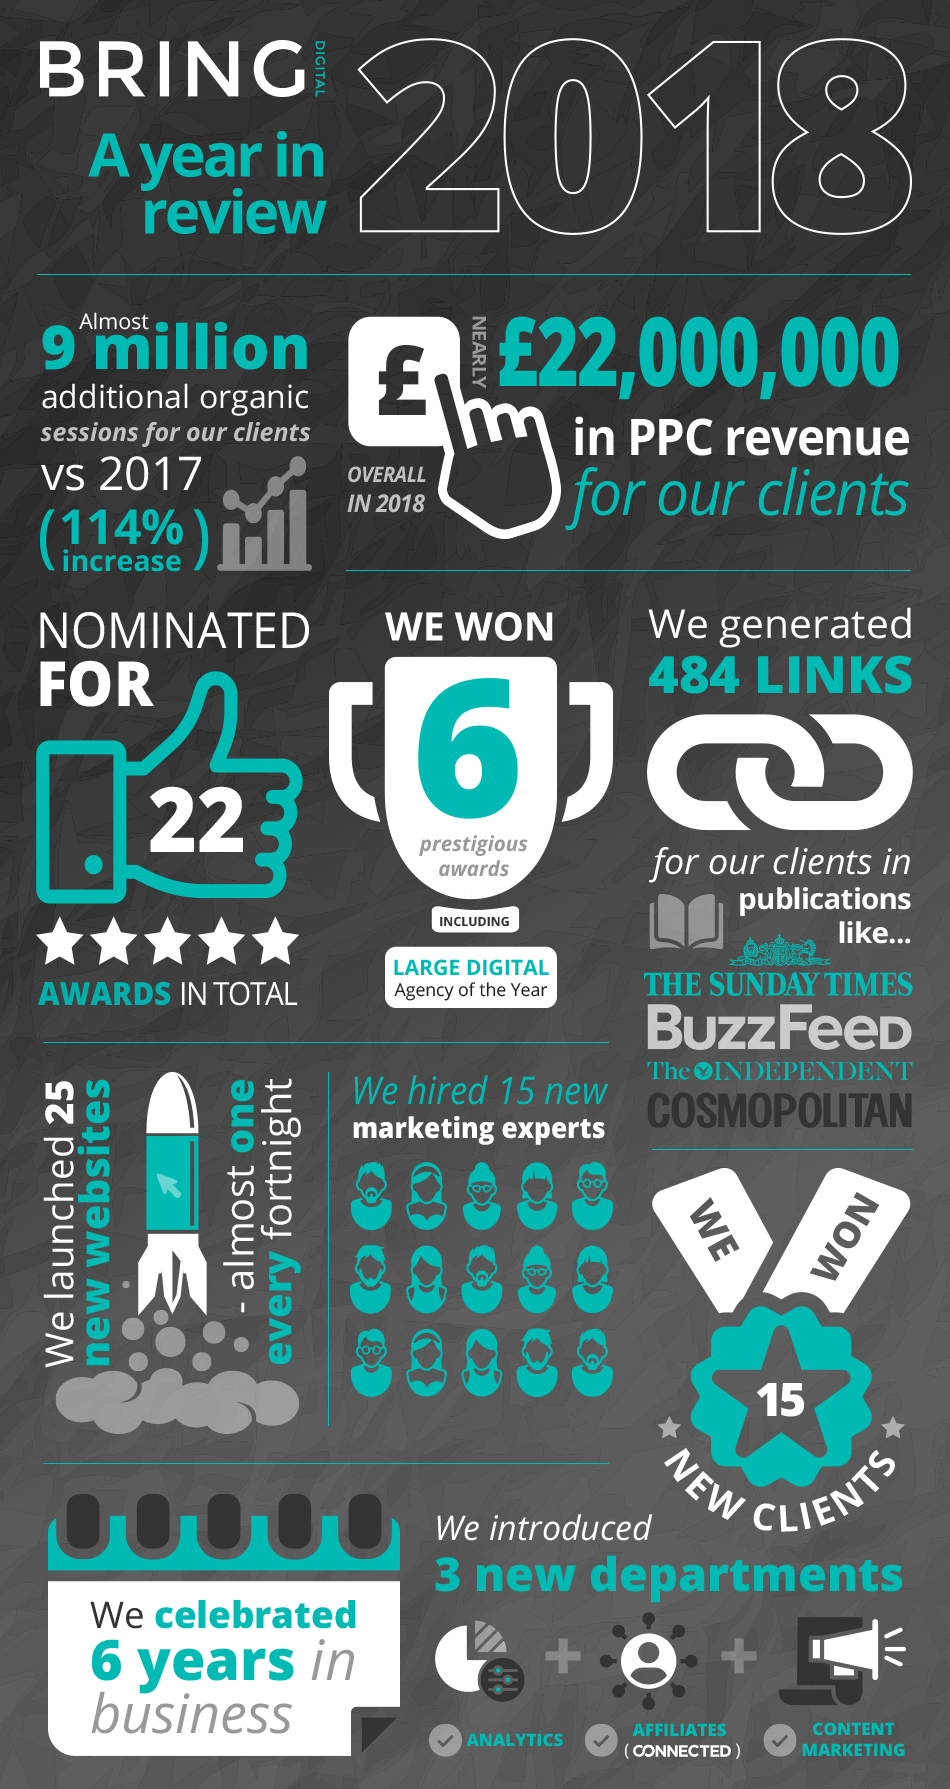 Infographic showcasing 10 impressive stats from 2018 for Bring Digital